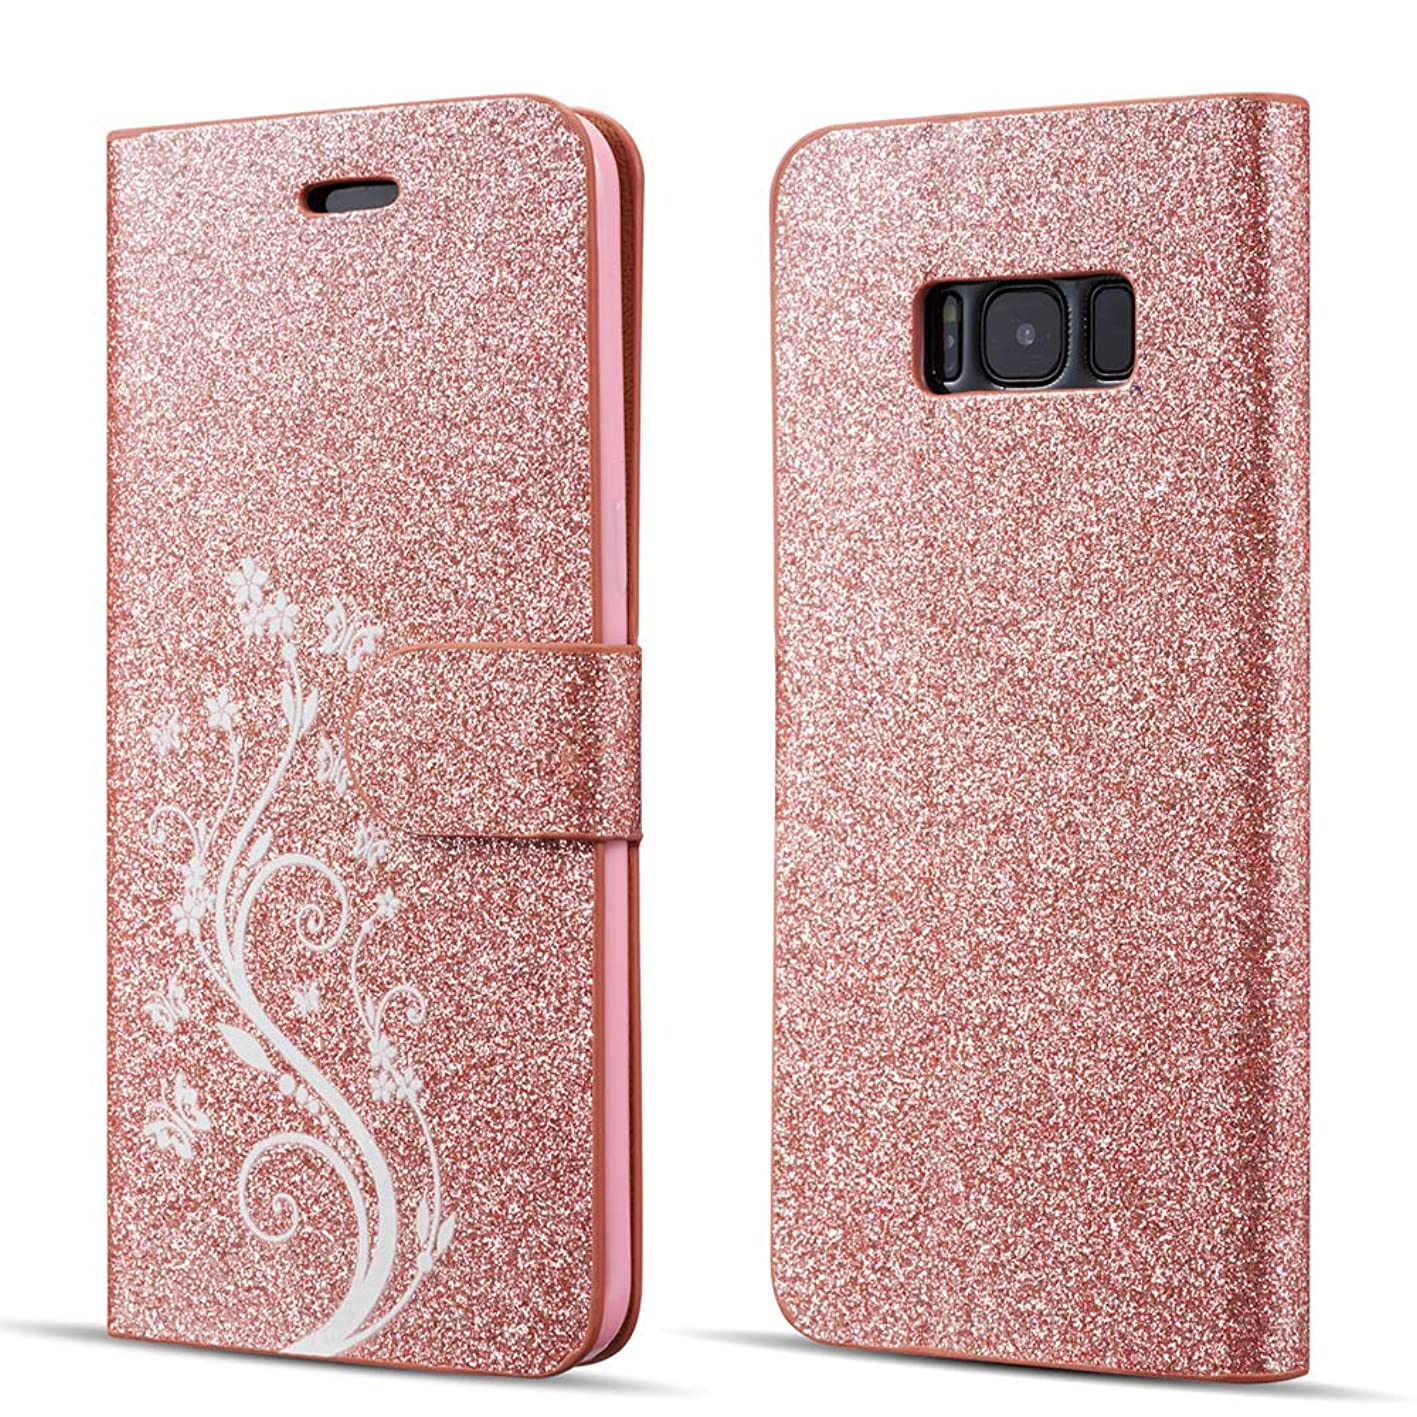 UEEBAI Case for Samsung Galaxy Note 8,Luxury Bling Glitter Case with [Magnetic Closure] [Card Slots] [Kickstand] PU Leather Flip Cover with Elegant Flower Patterns Printing for Galaxy Note 8-Rose gold bbfhxsdetiw642